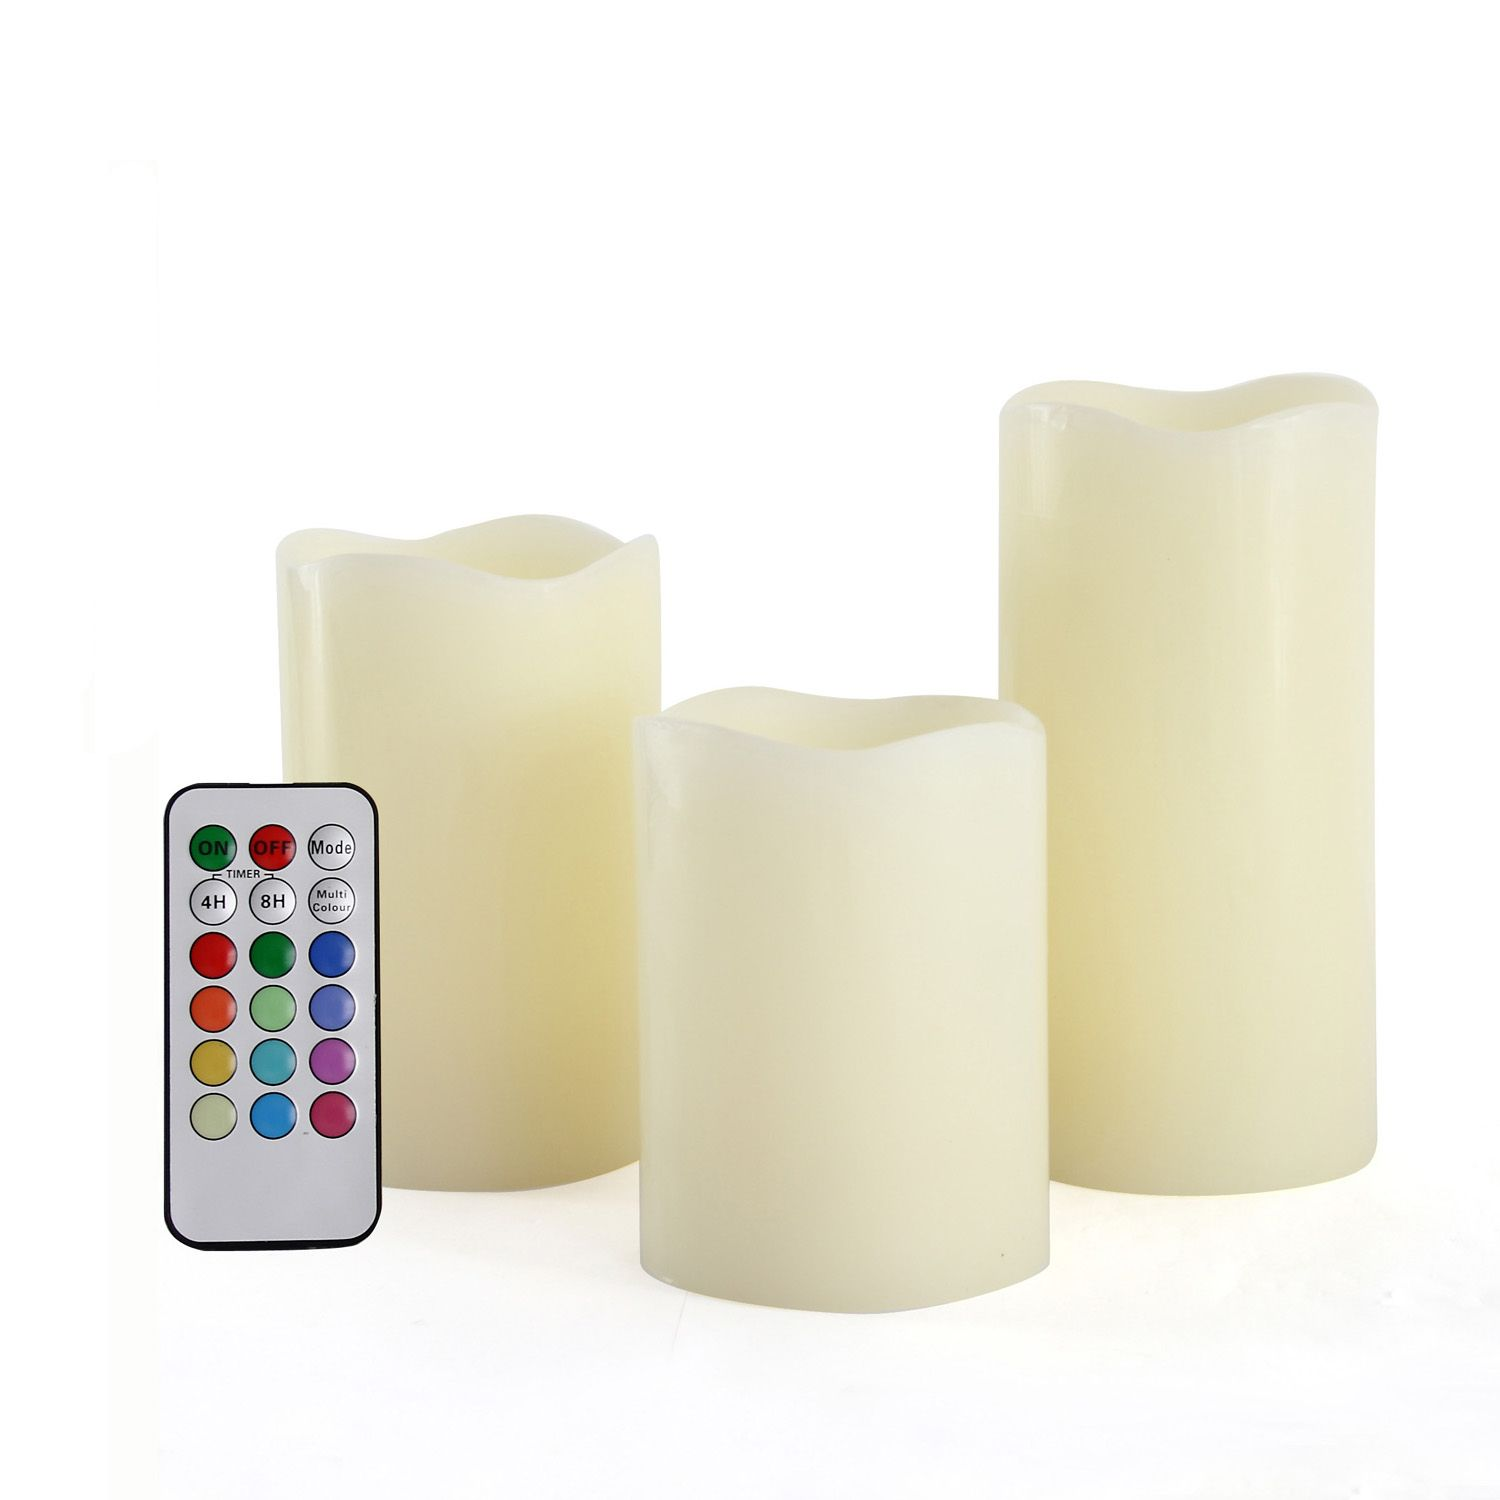 Round Melted Edge Remote Controlled Multi Color Changing Flameless Wax Pillar Candles - Set of 3